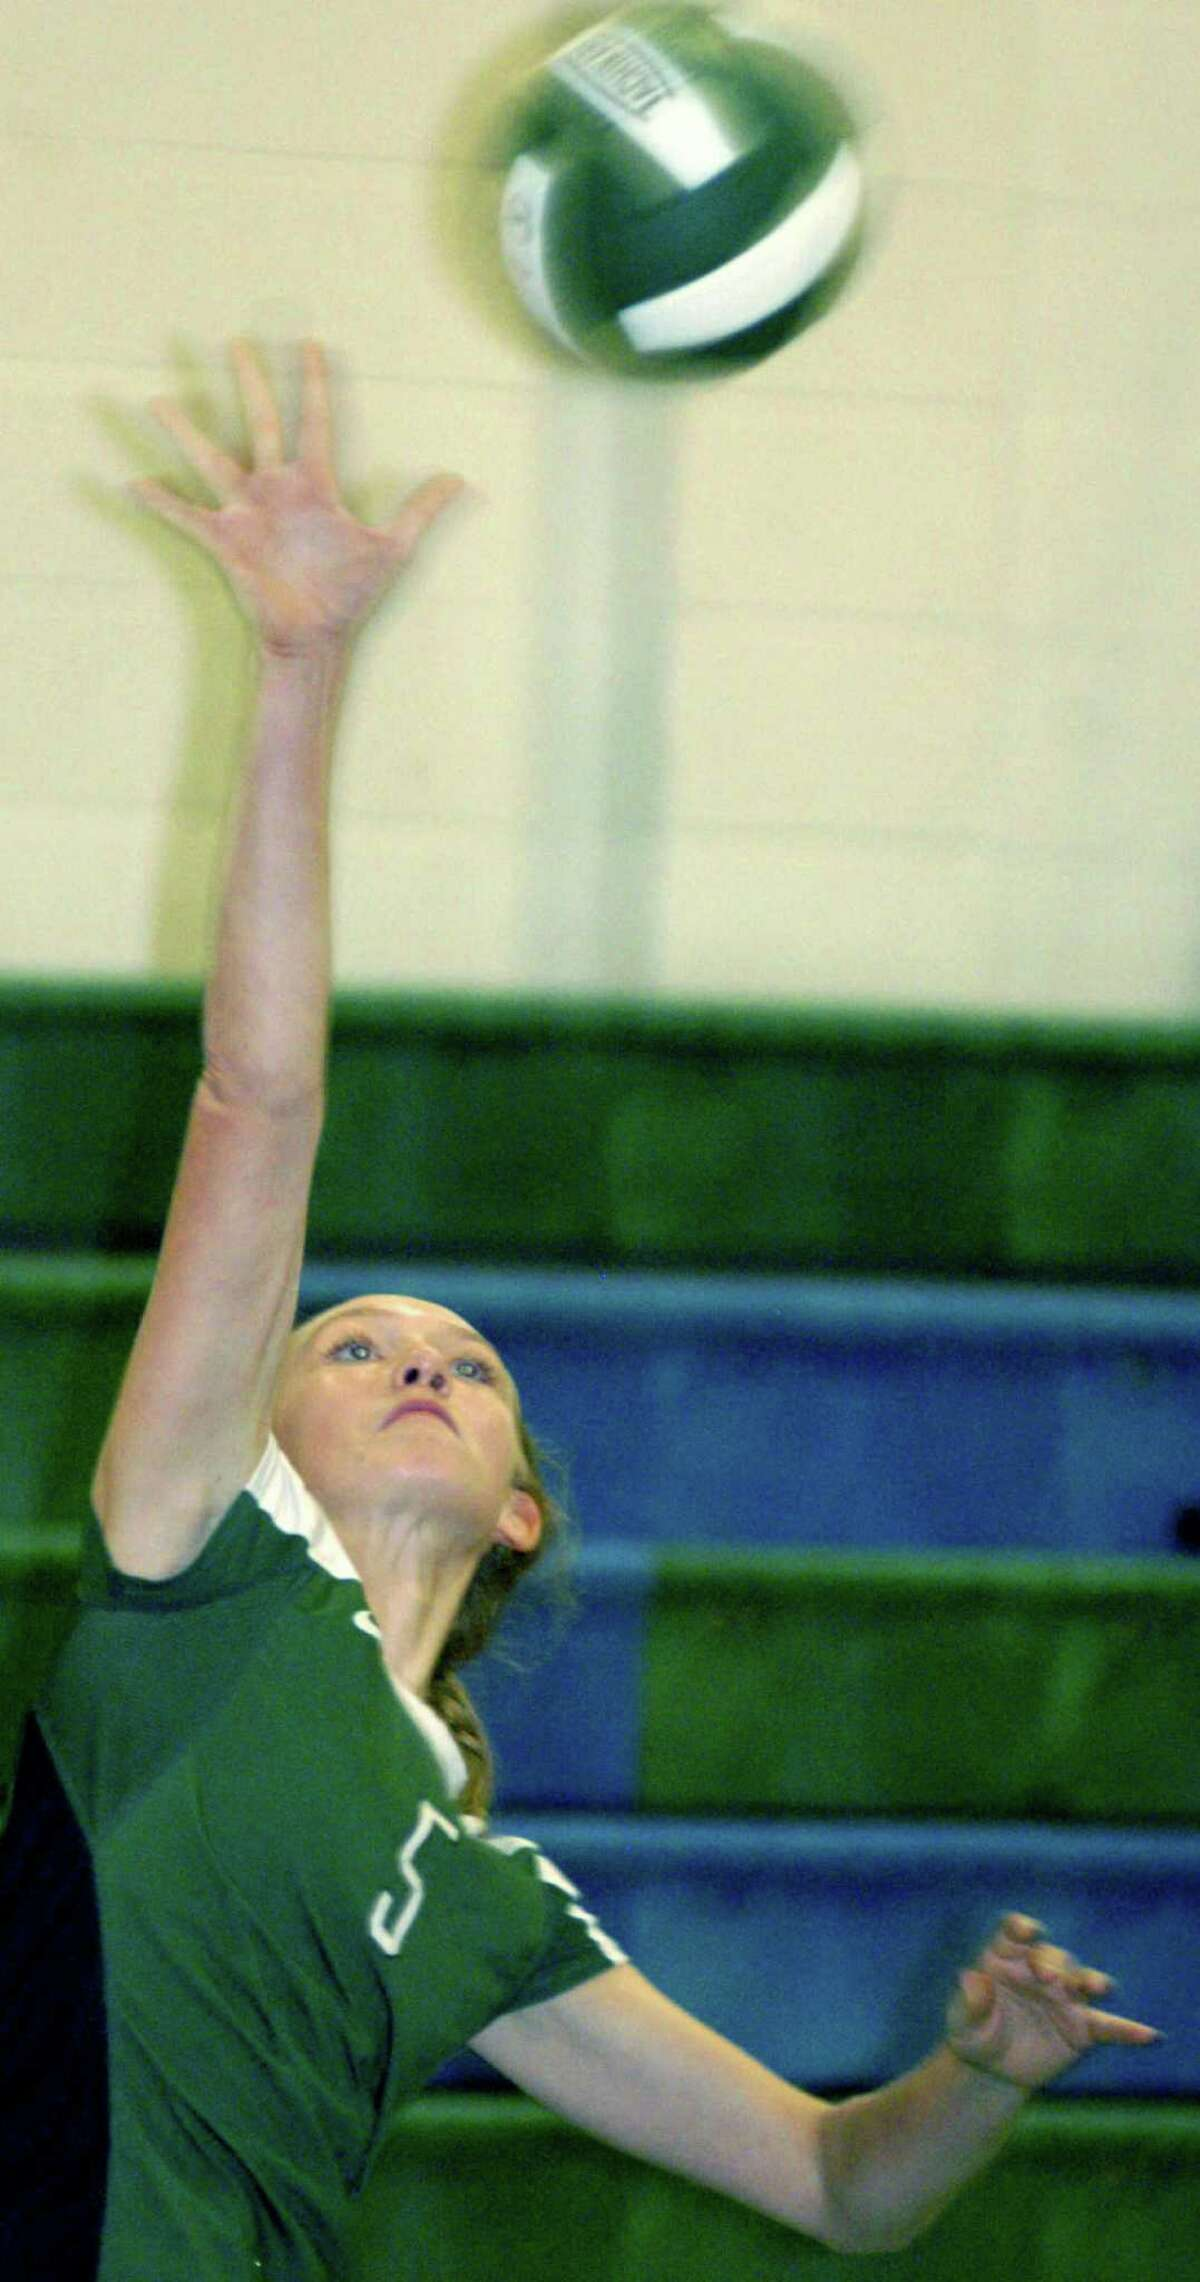 The Green Wave's Stephanie Fleet demonstrates the serving technique that accounted for 18 straight points during Game 1 of New Milford High School volleyball's victory over visiting Notre Dame of Fairfield, Oct. 5, 2012